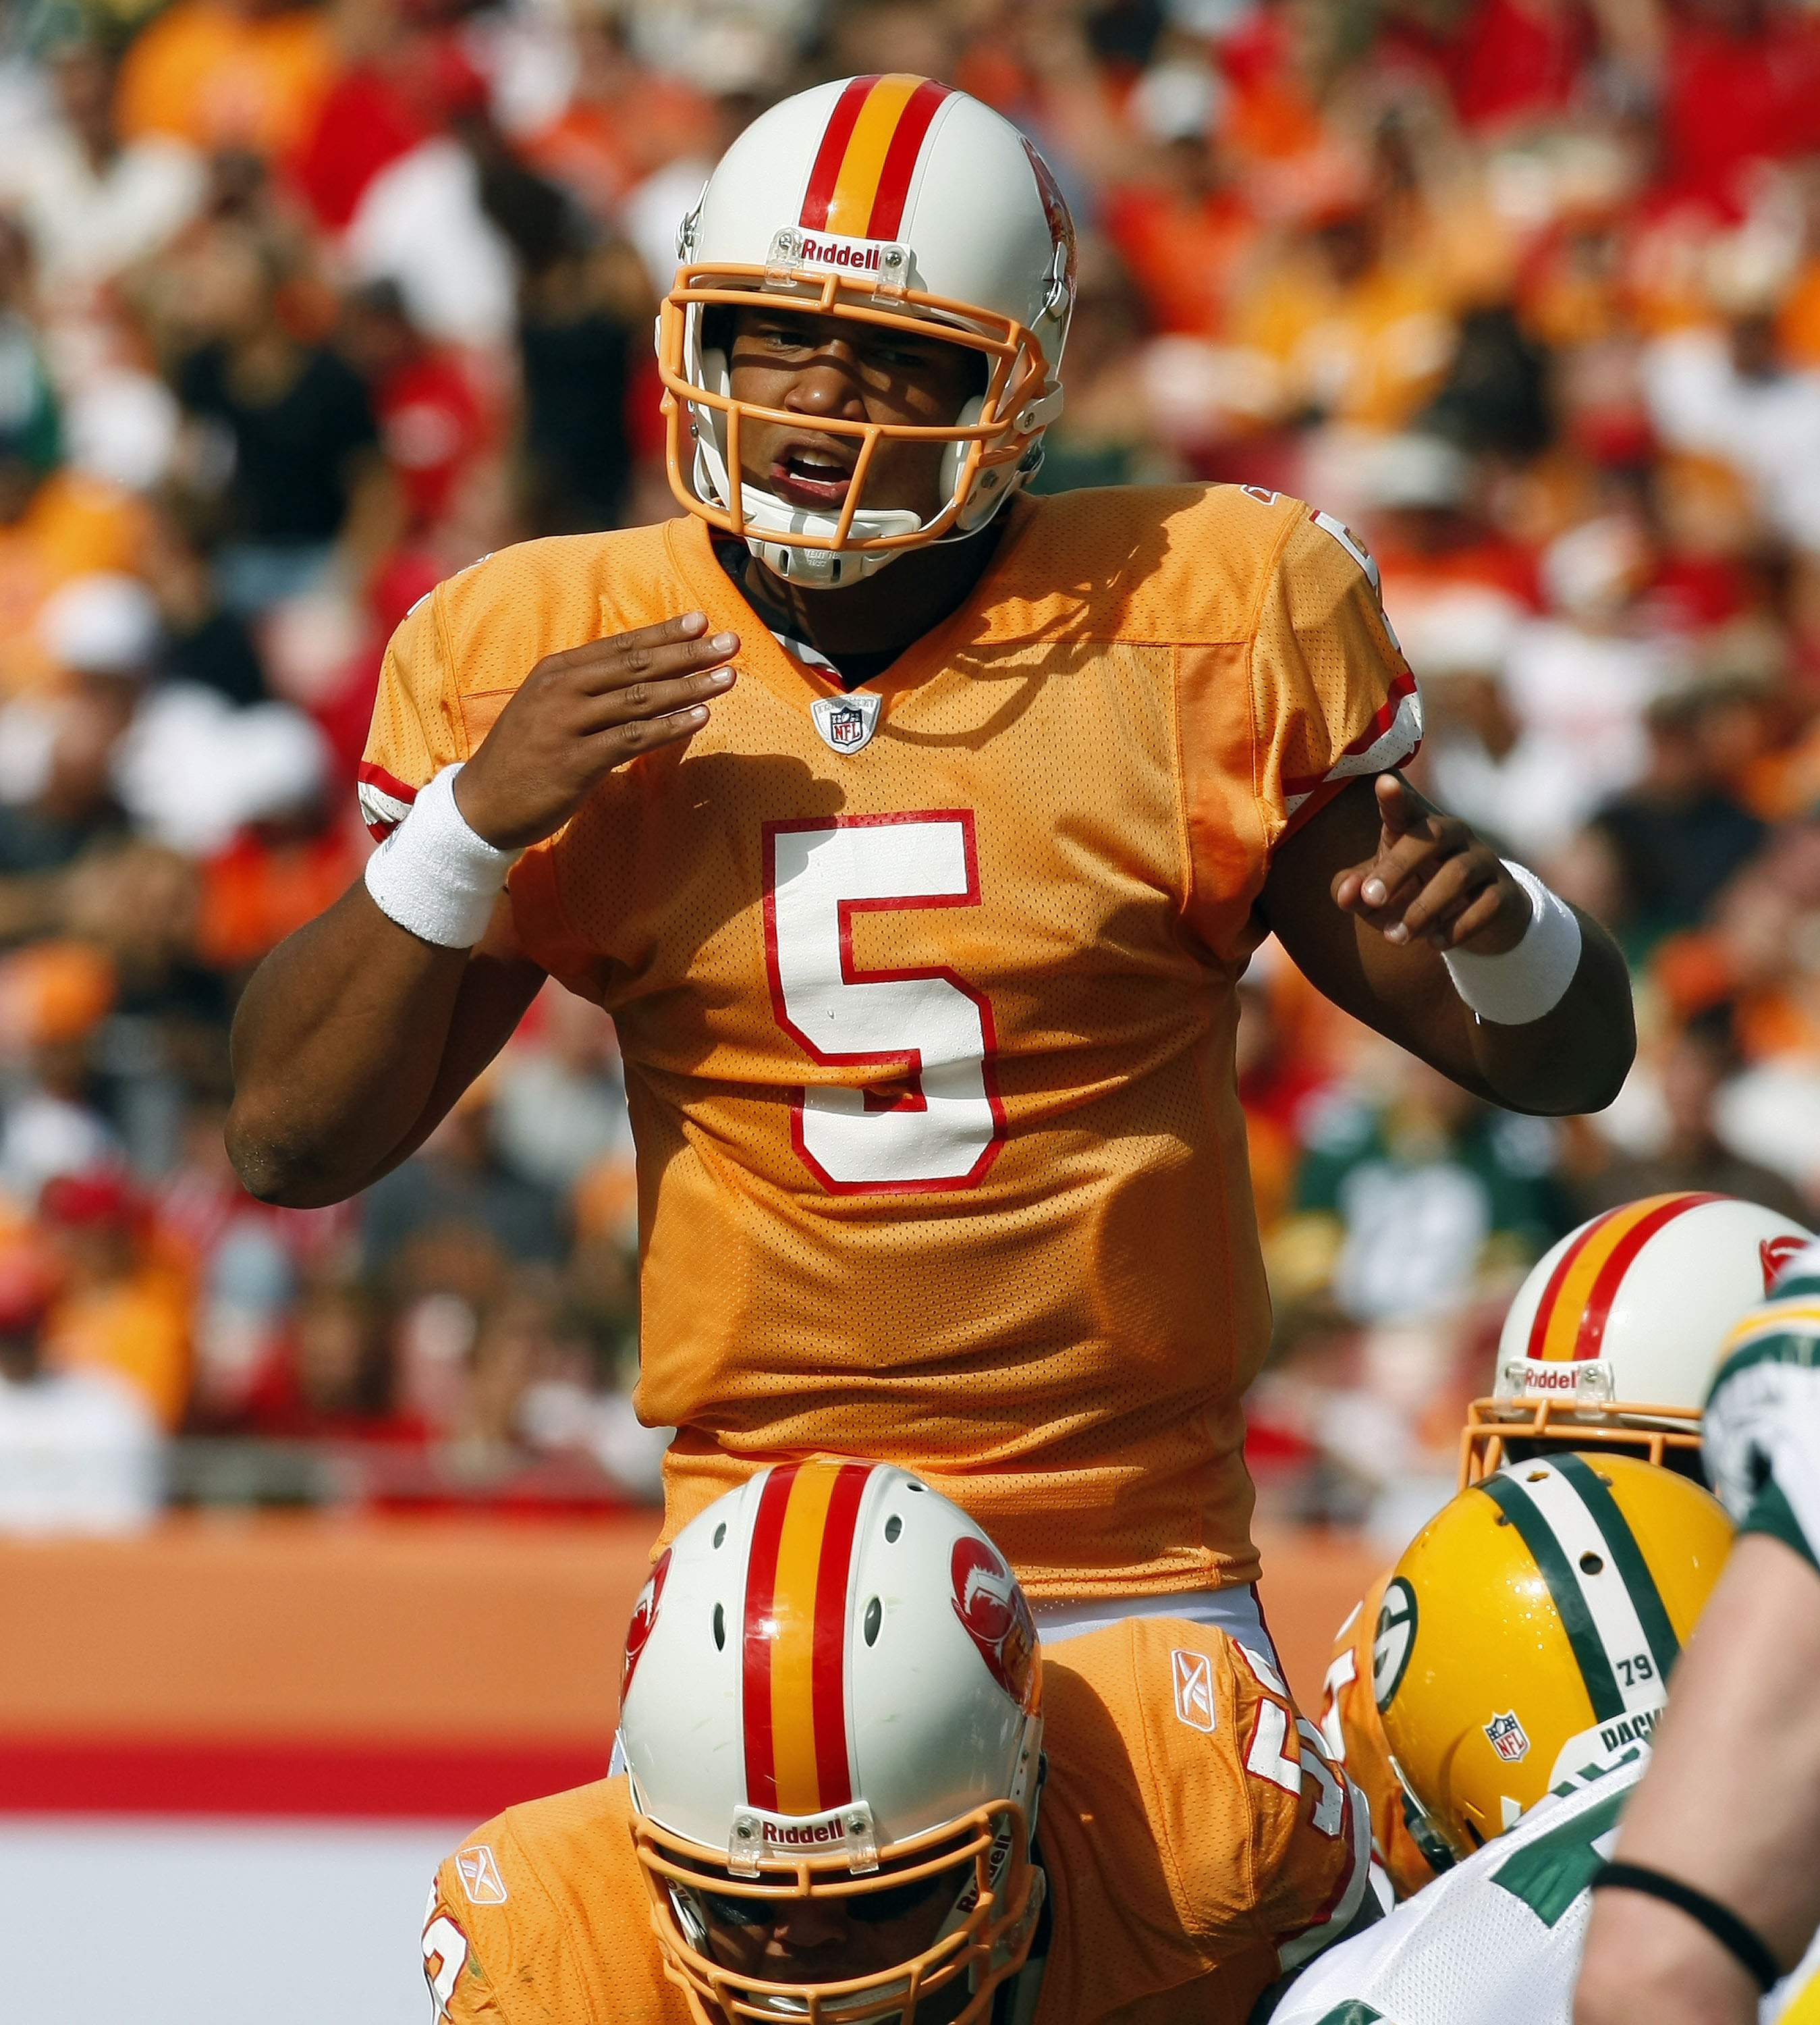 d6d62df854d I hadn't remembered them doing this with the creamsicle throwbacks last  season, so I double-checked.